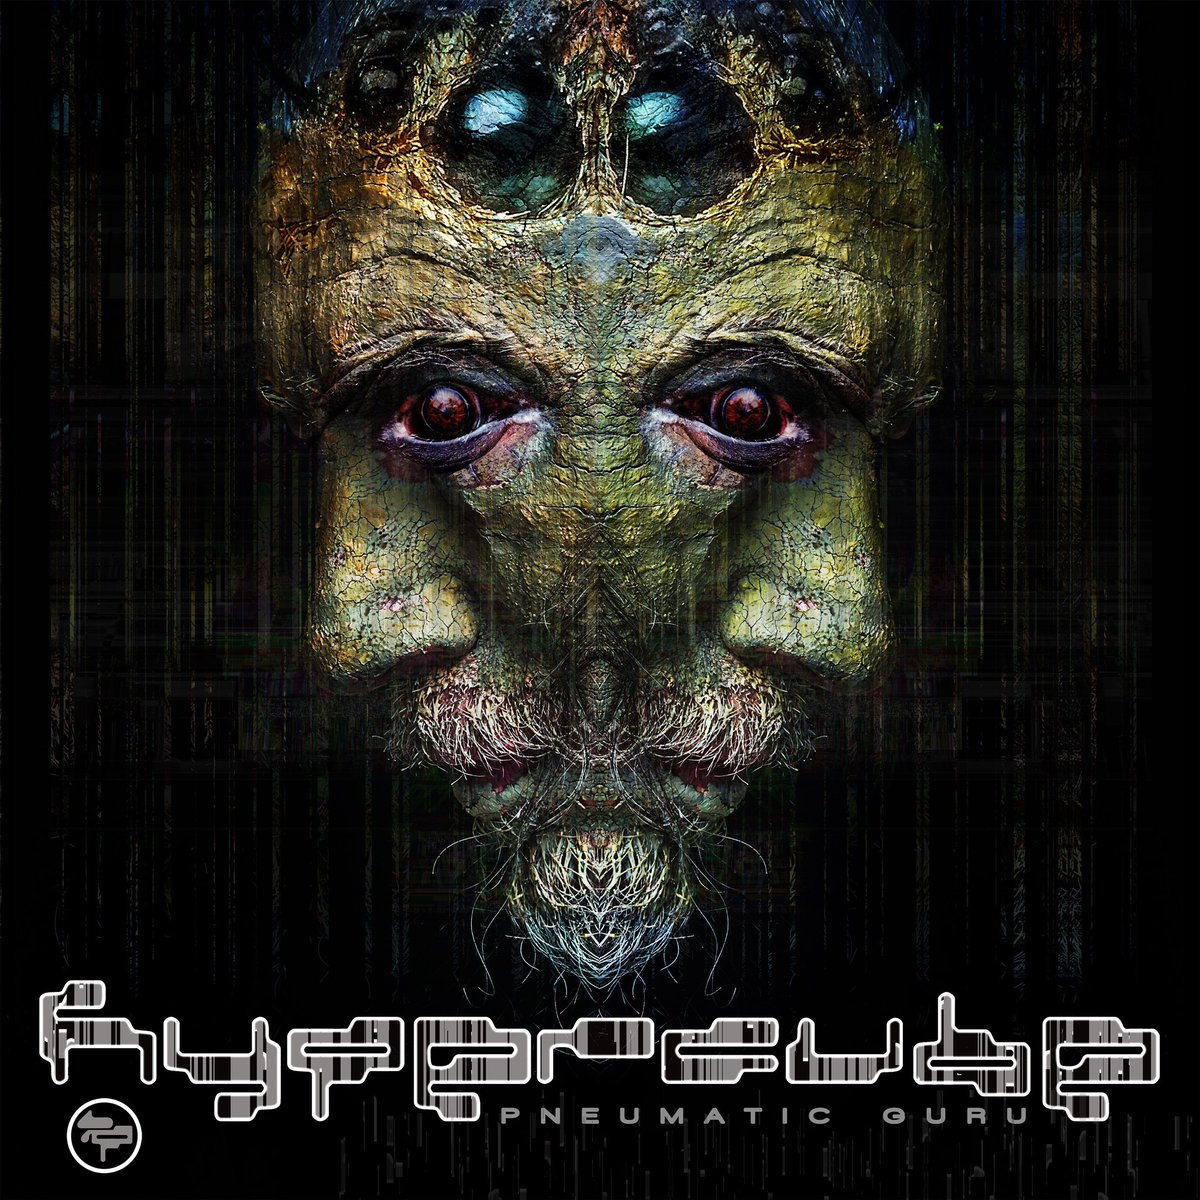 RT paracusiamedia: Check out the Ear Candy review of Hypercube - Pneumatic Guru!  https://earcandyarchives.tumblr.com/post/614818101080489984/artist-hypercube-release-pneumatic-guru-label…  #idm #sound #sounddesign #music #psychedelic #psy #glitch #electroacoustic #alien #holograms #immersion #paracusia #virtualrealitypic.twitter.com/3nelaD315Y